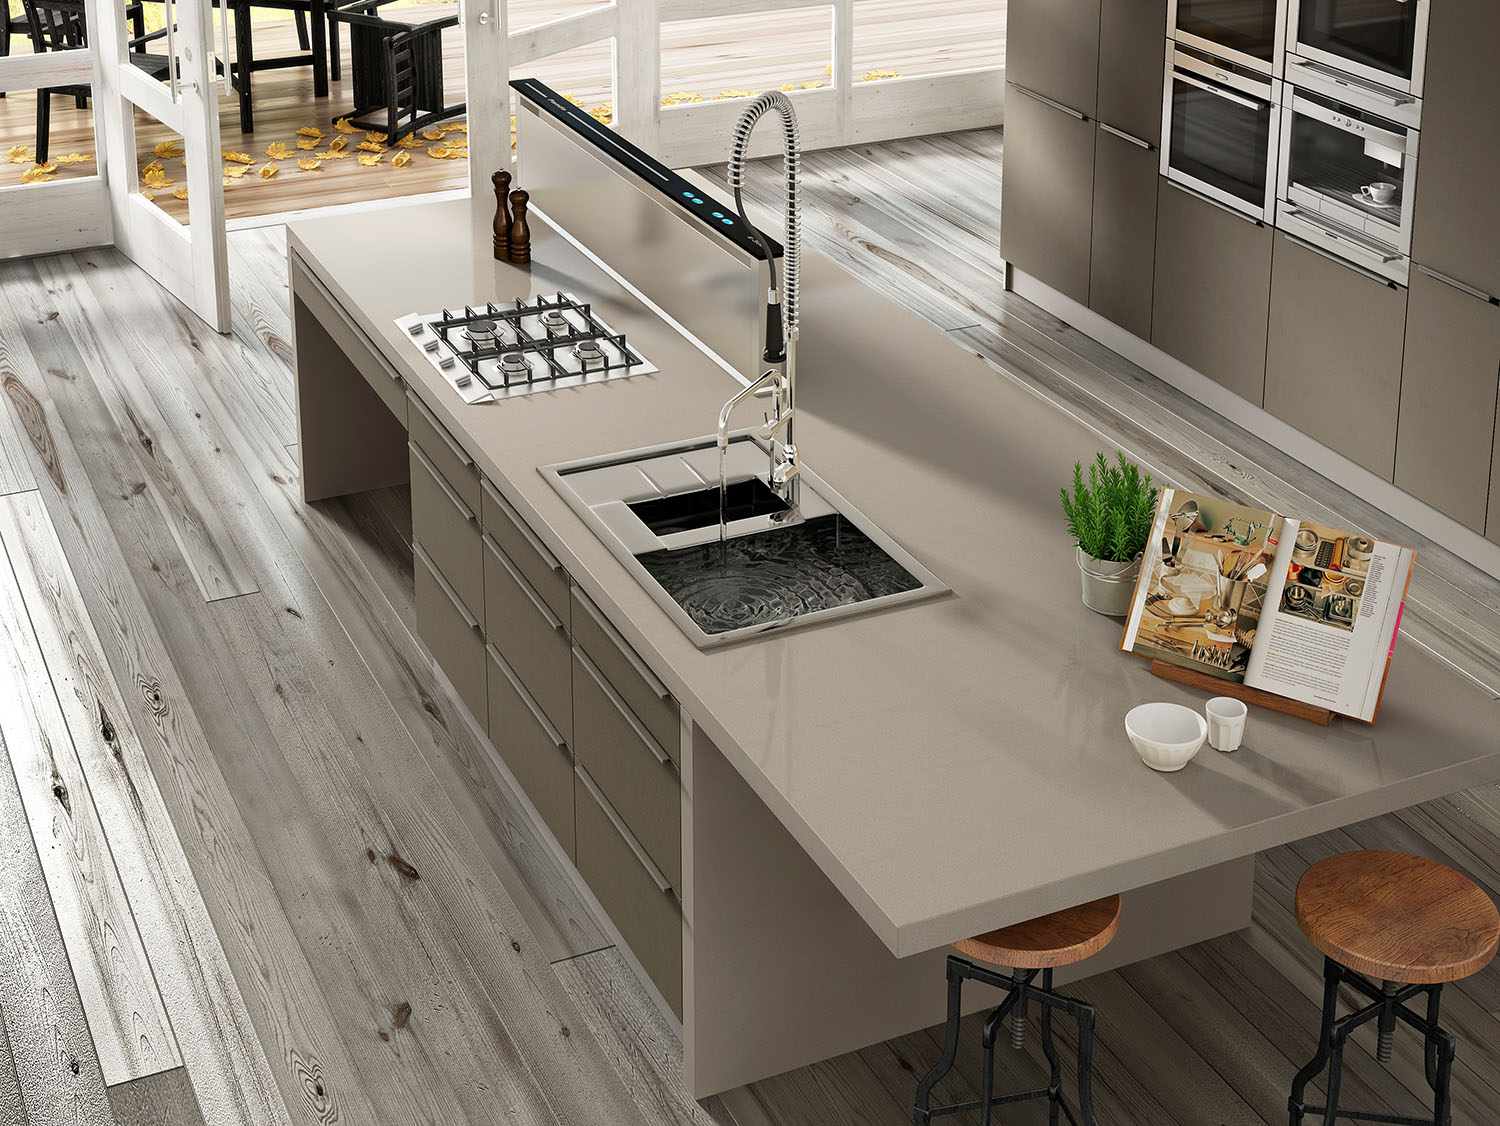 state-of-the-art worktops